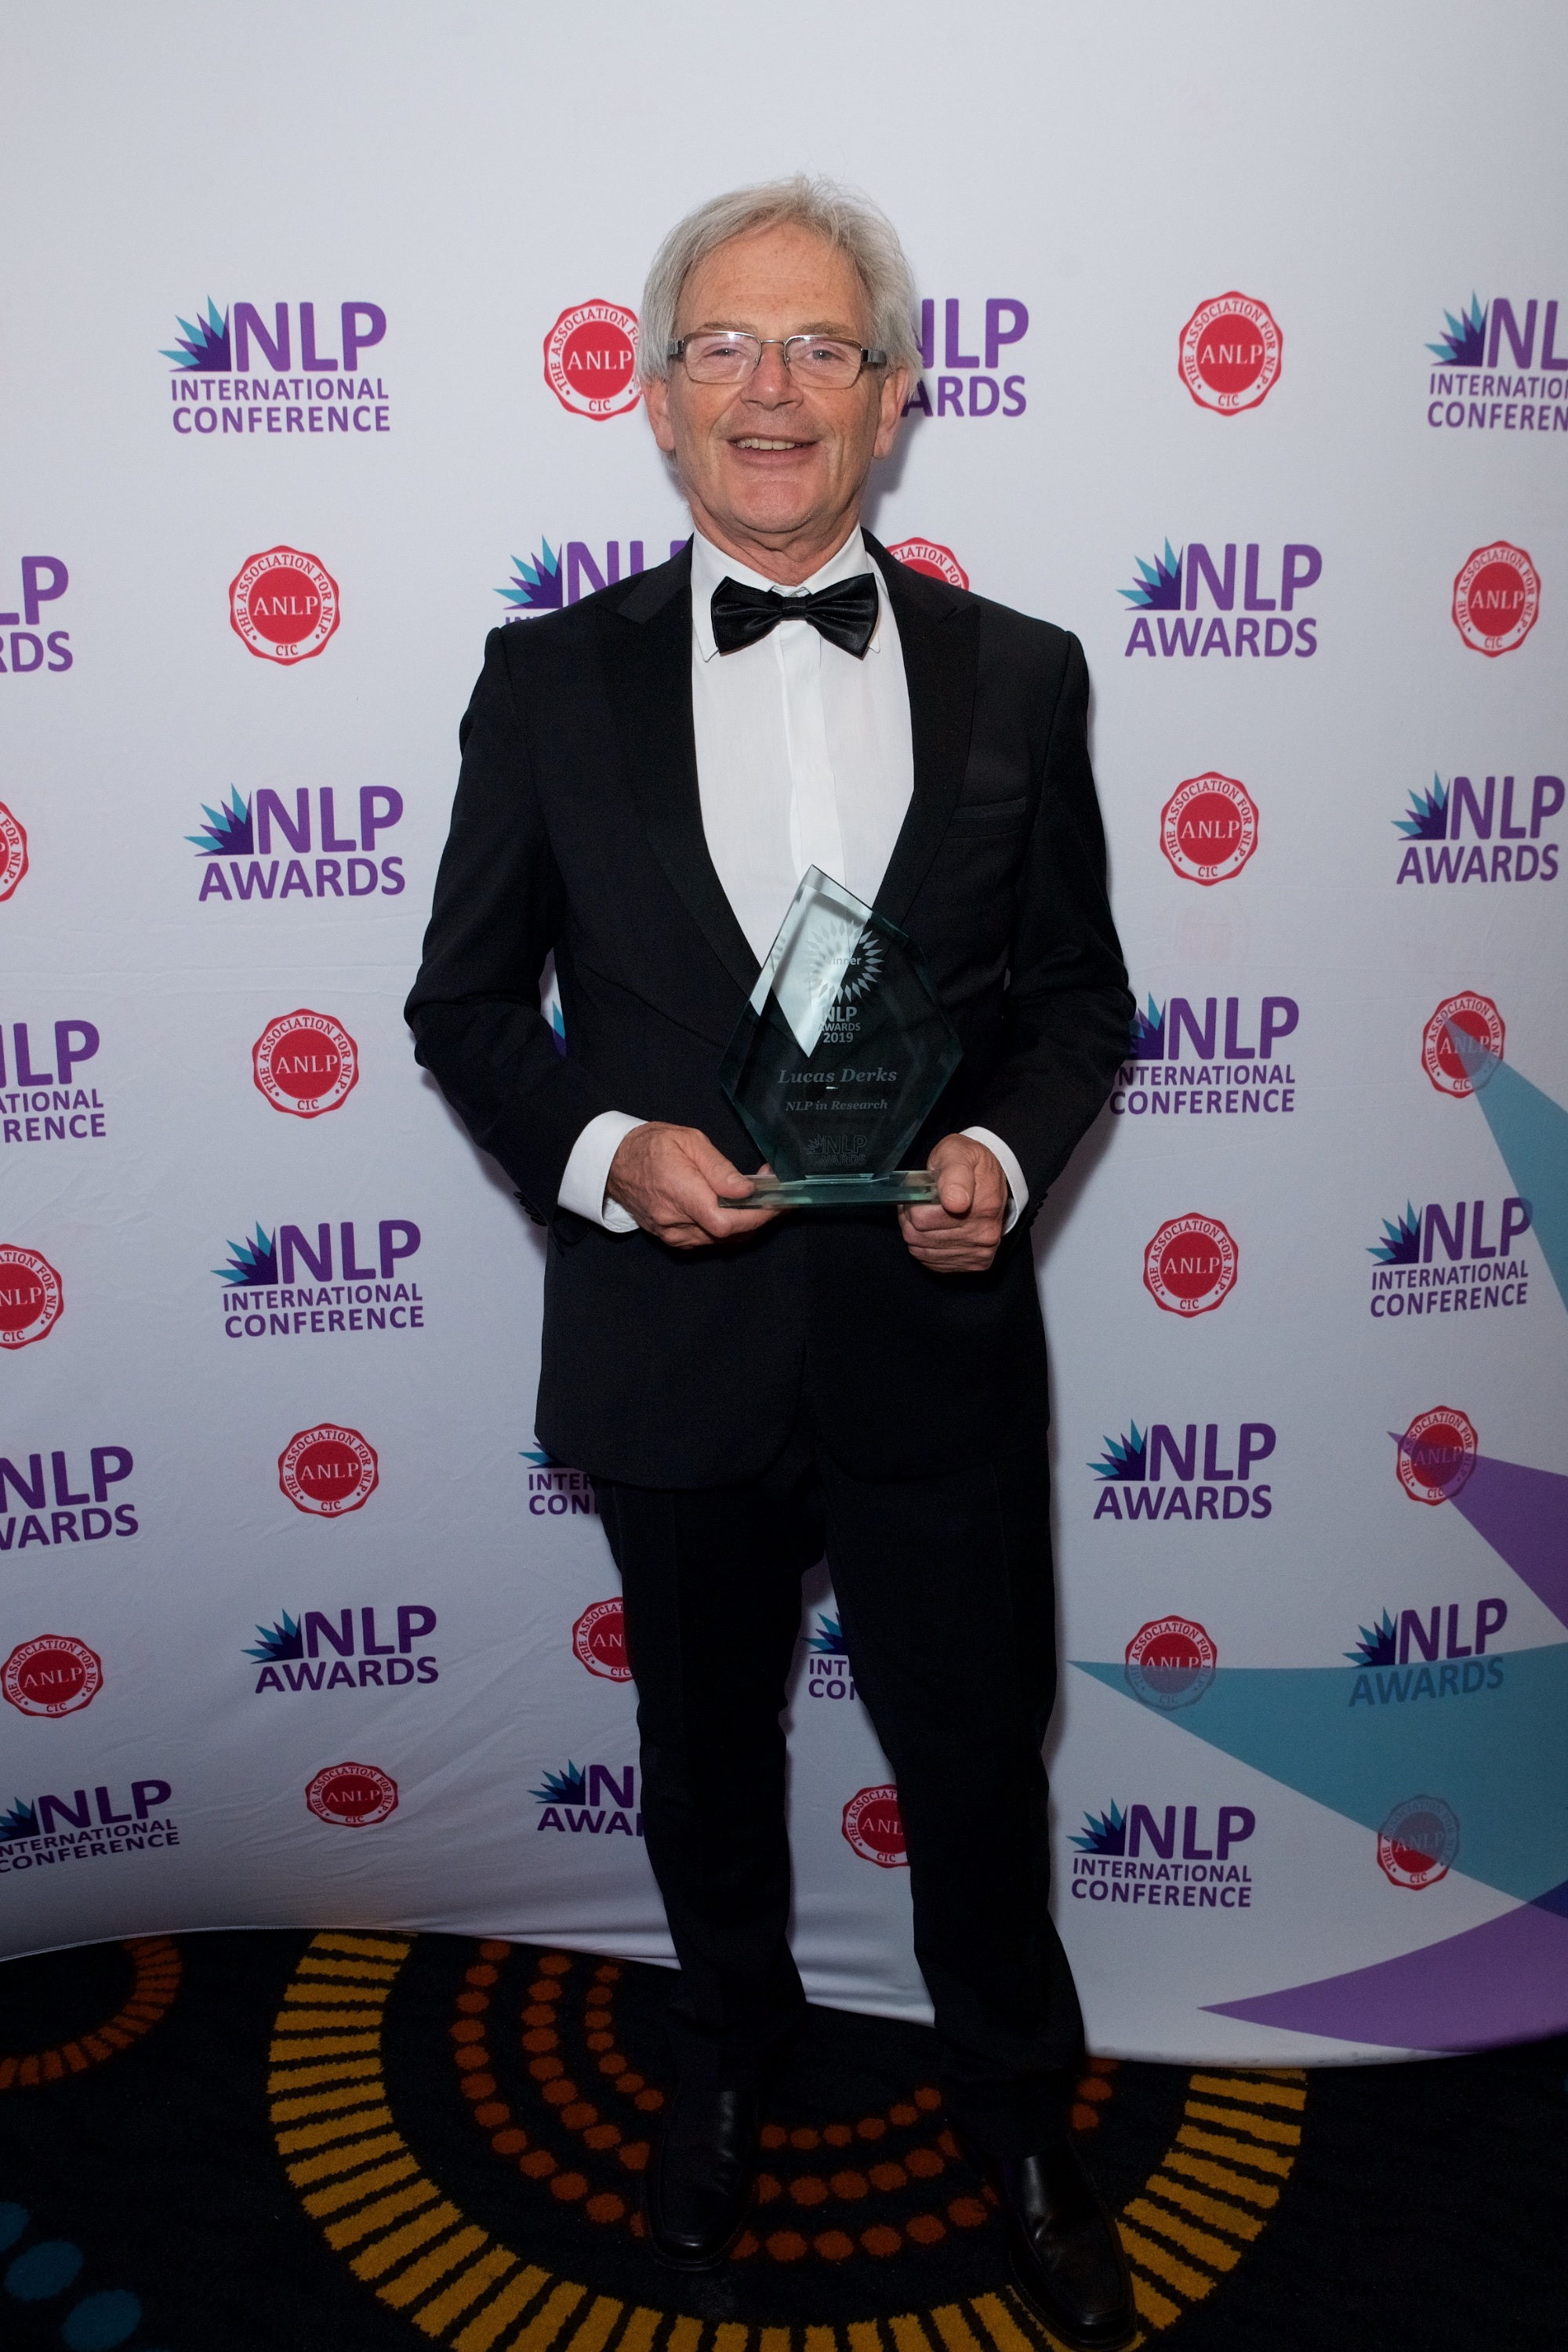 NLP in Research Award Winner 19